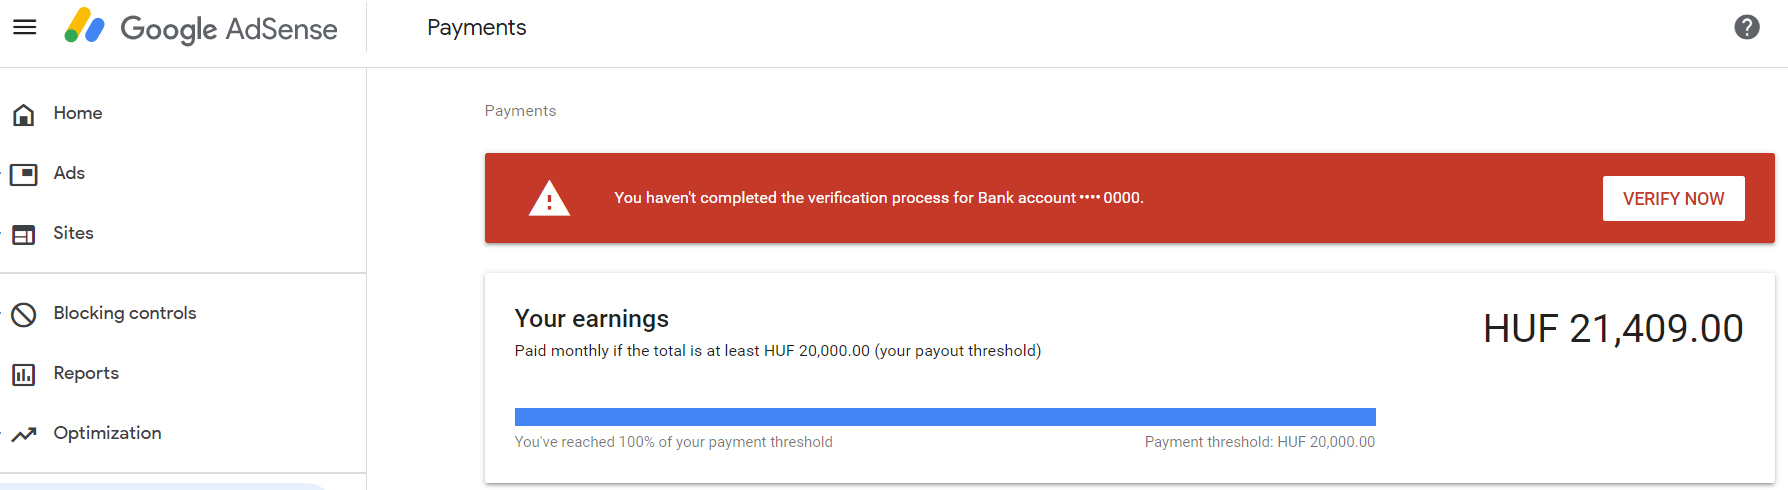 AdSense verification pending status